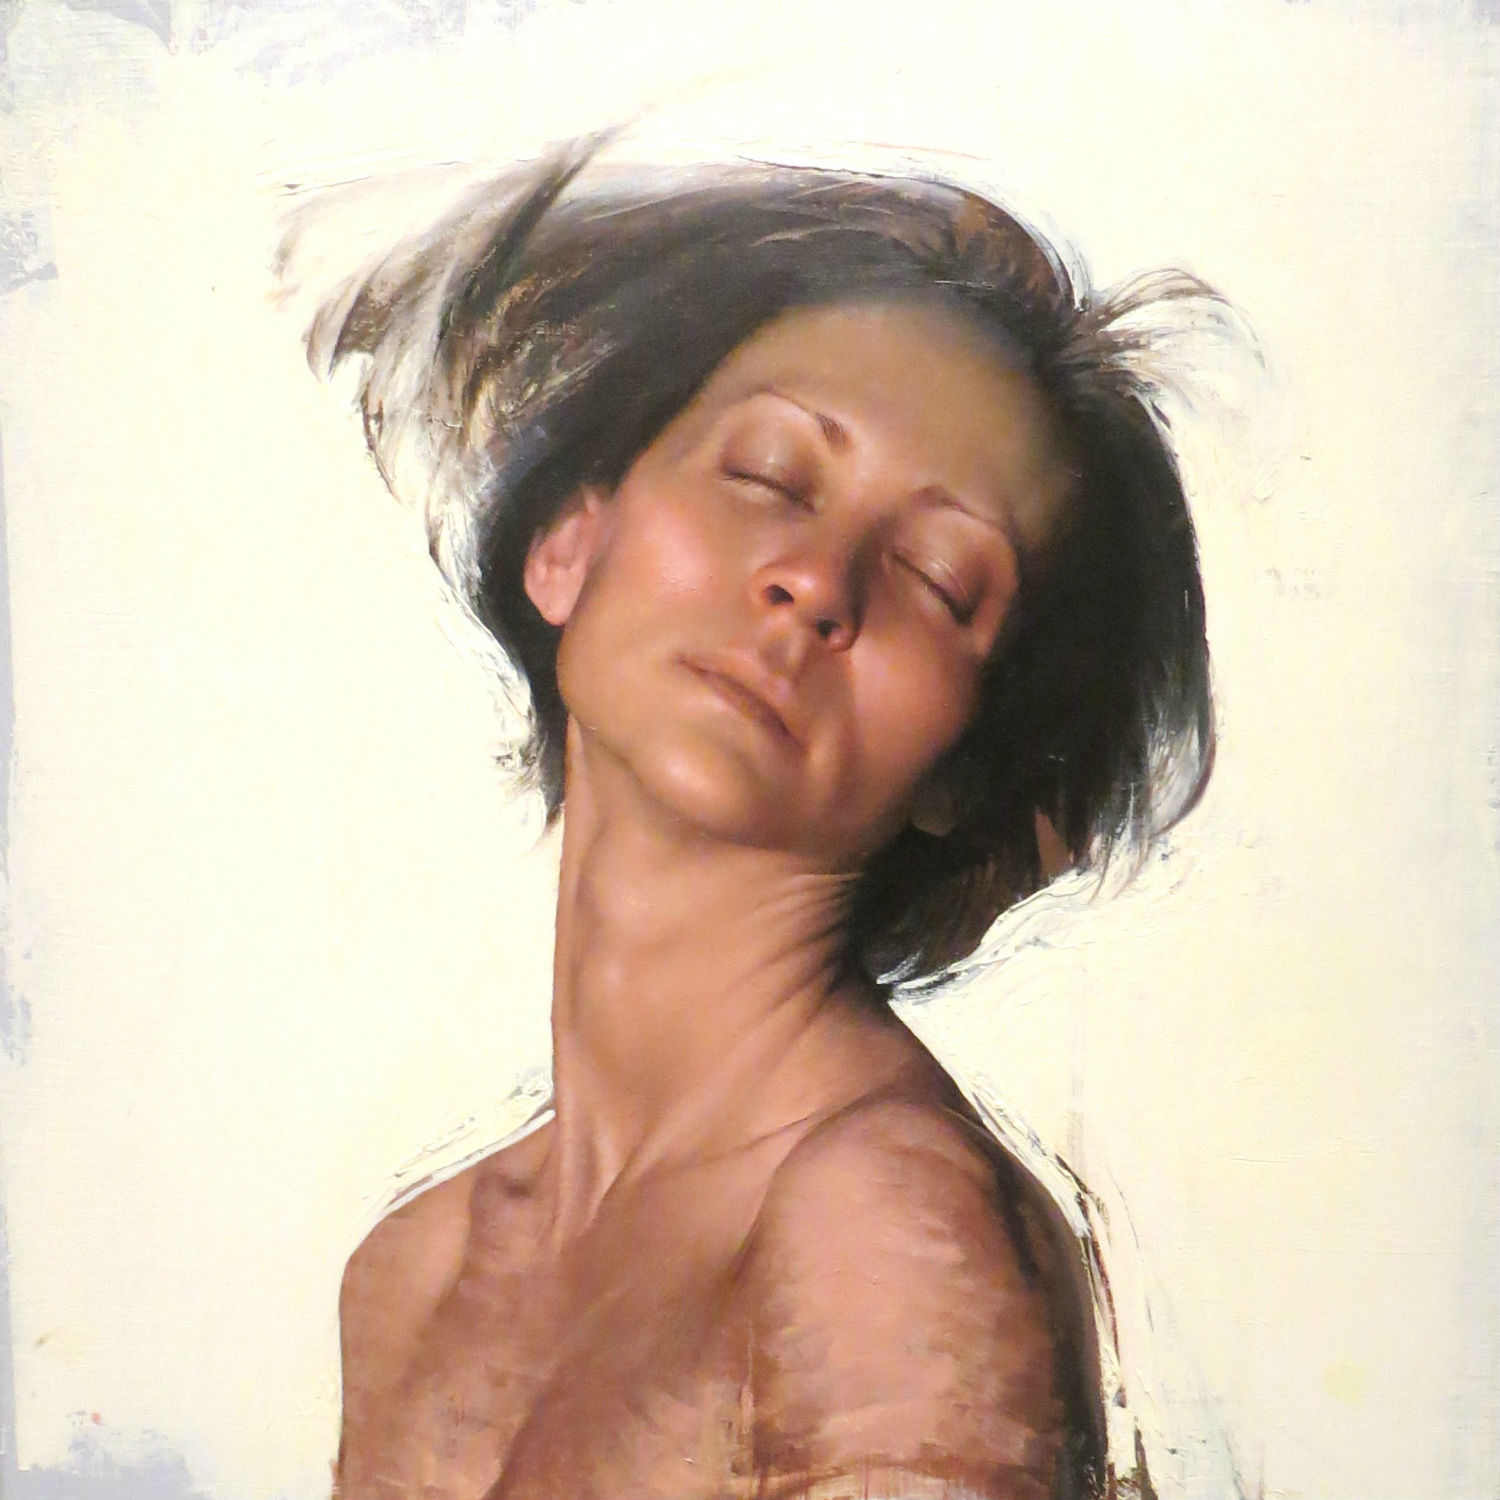 daniel sprick painting hyperreal portrait